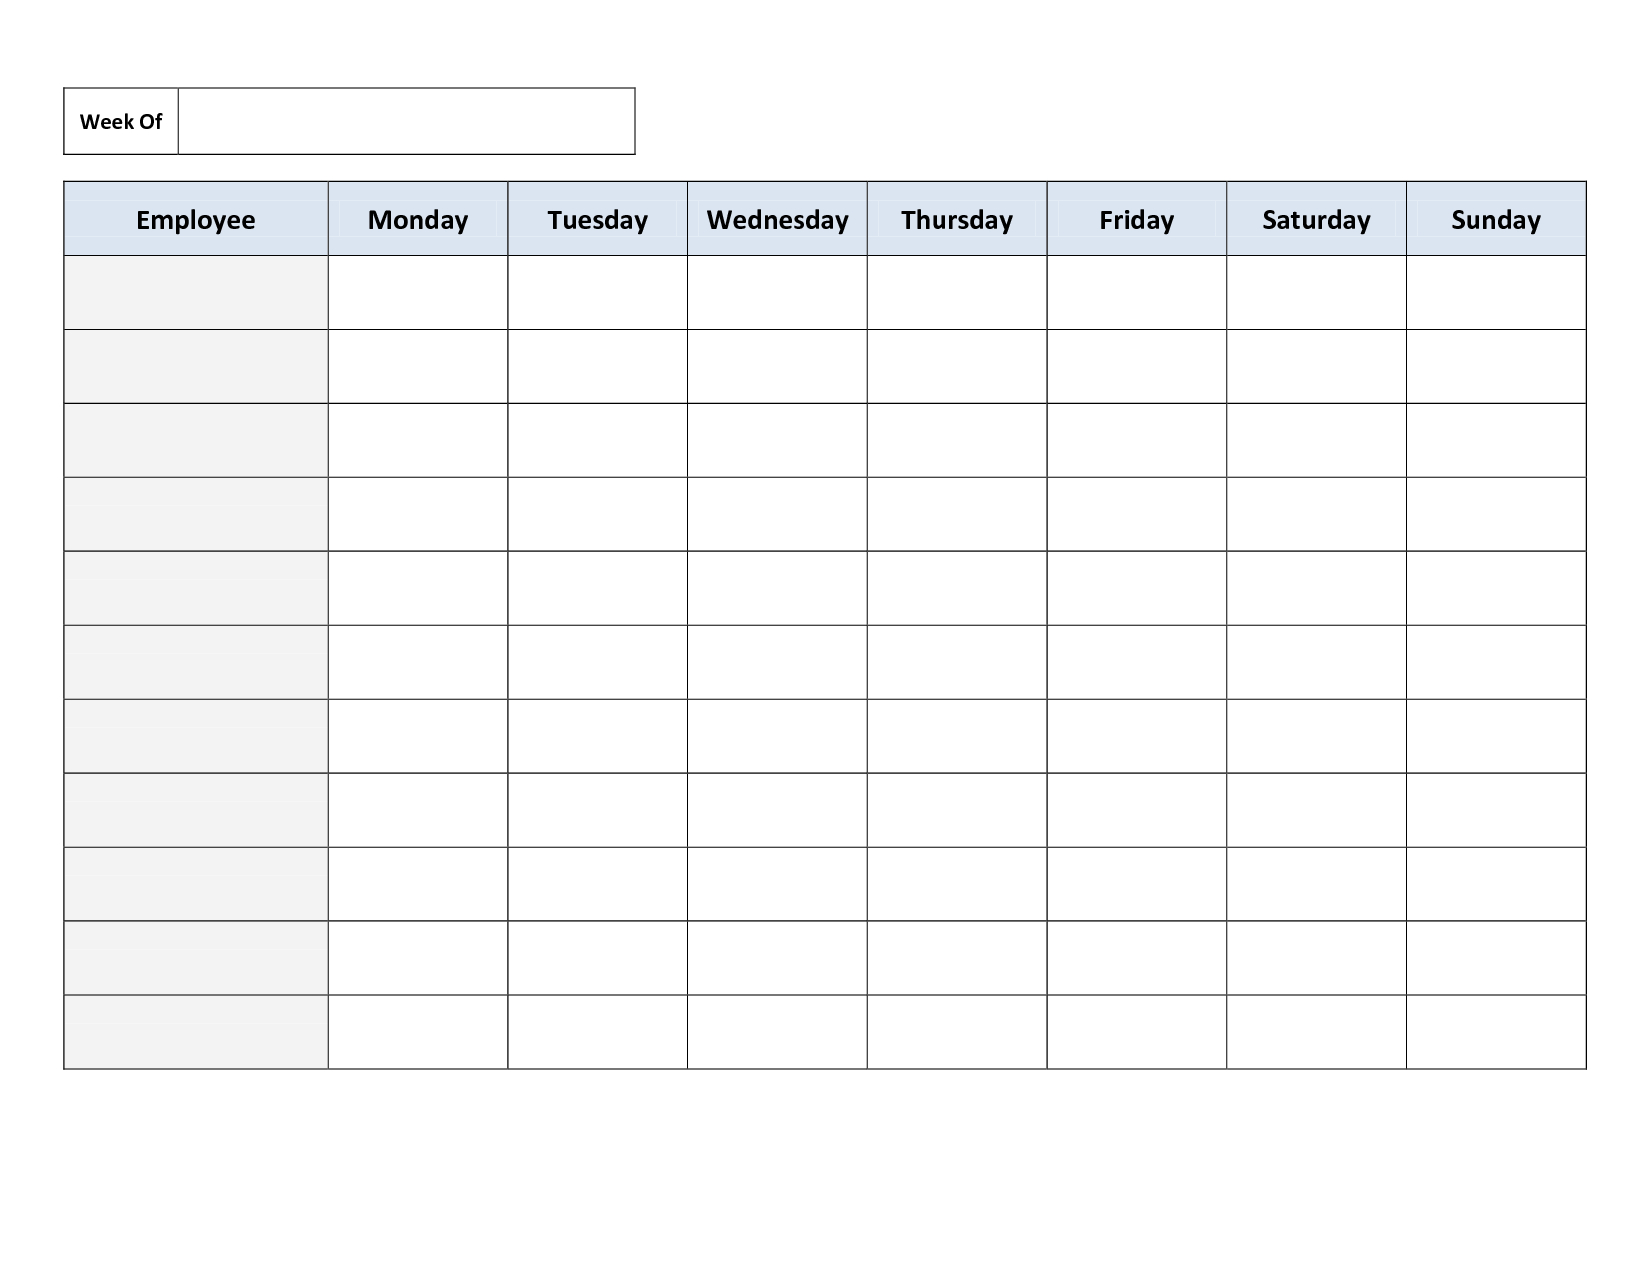 Weekly Employee Work Schedule Template. Free Blank Schedule.pdf - Free Printable Weekly Work Schedule